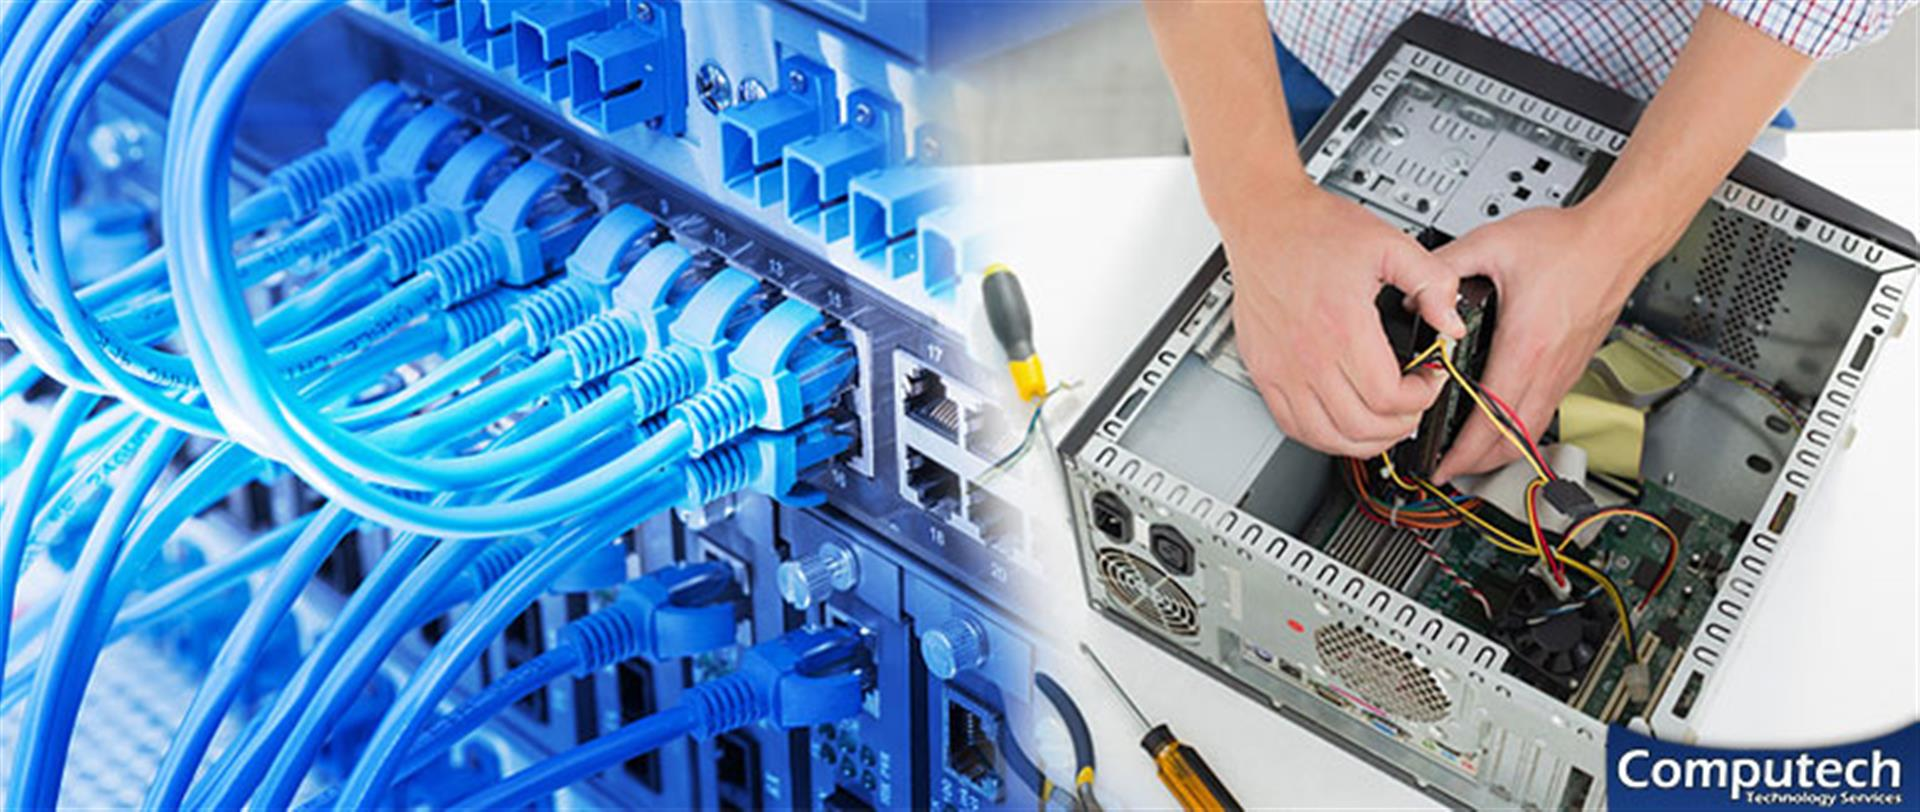 Daleville Alabama On-Site Computer PC & Printer Repairs, Networks, Voice & Data Low Voltage Cabling Services